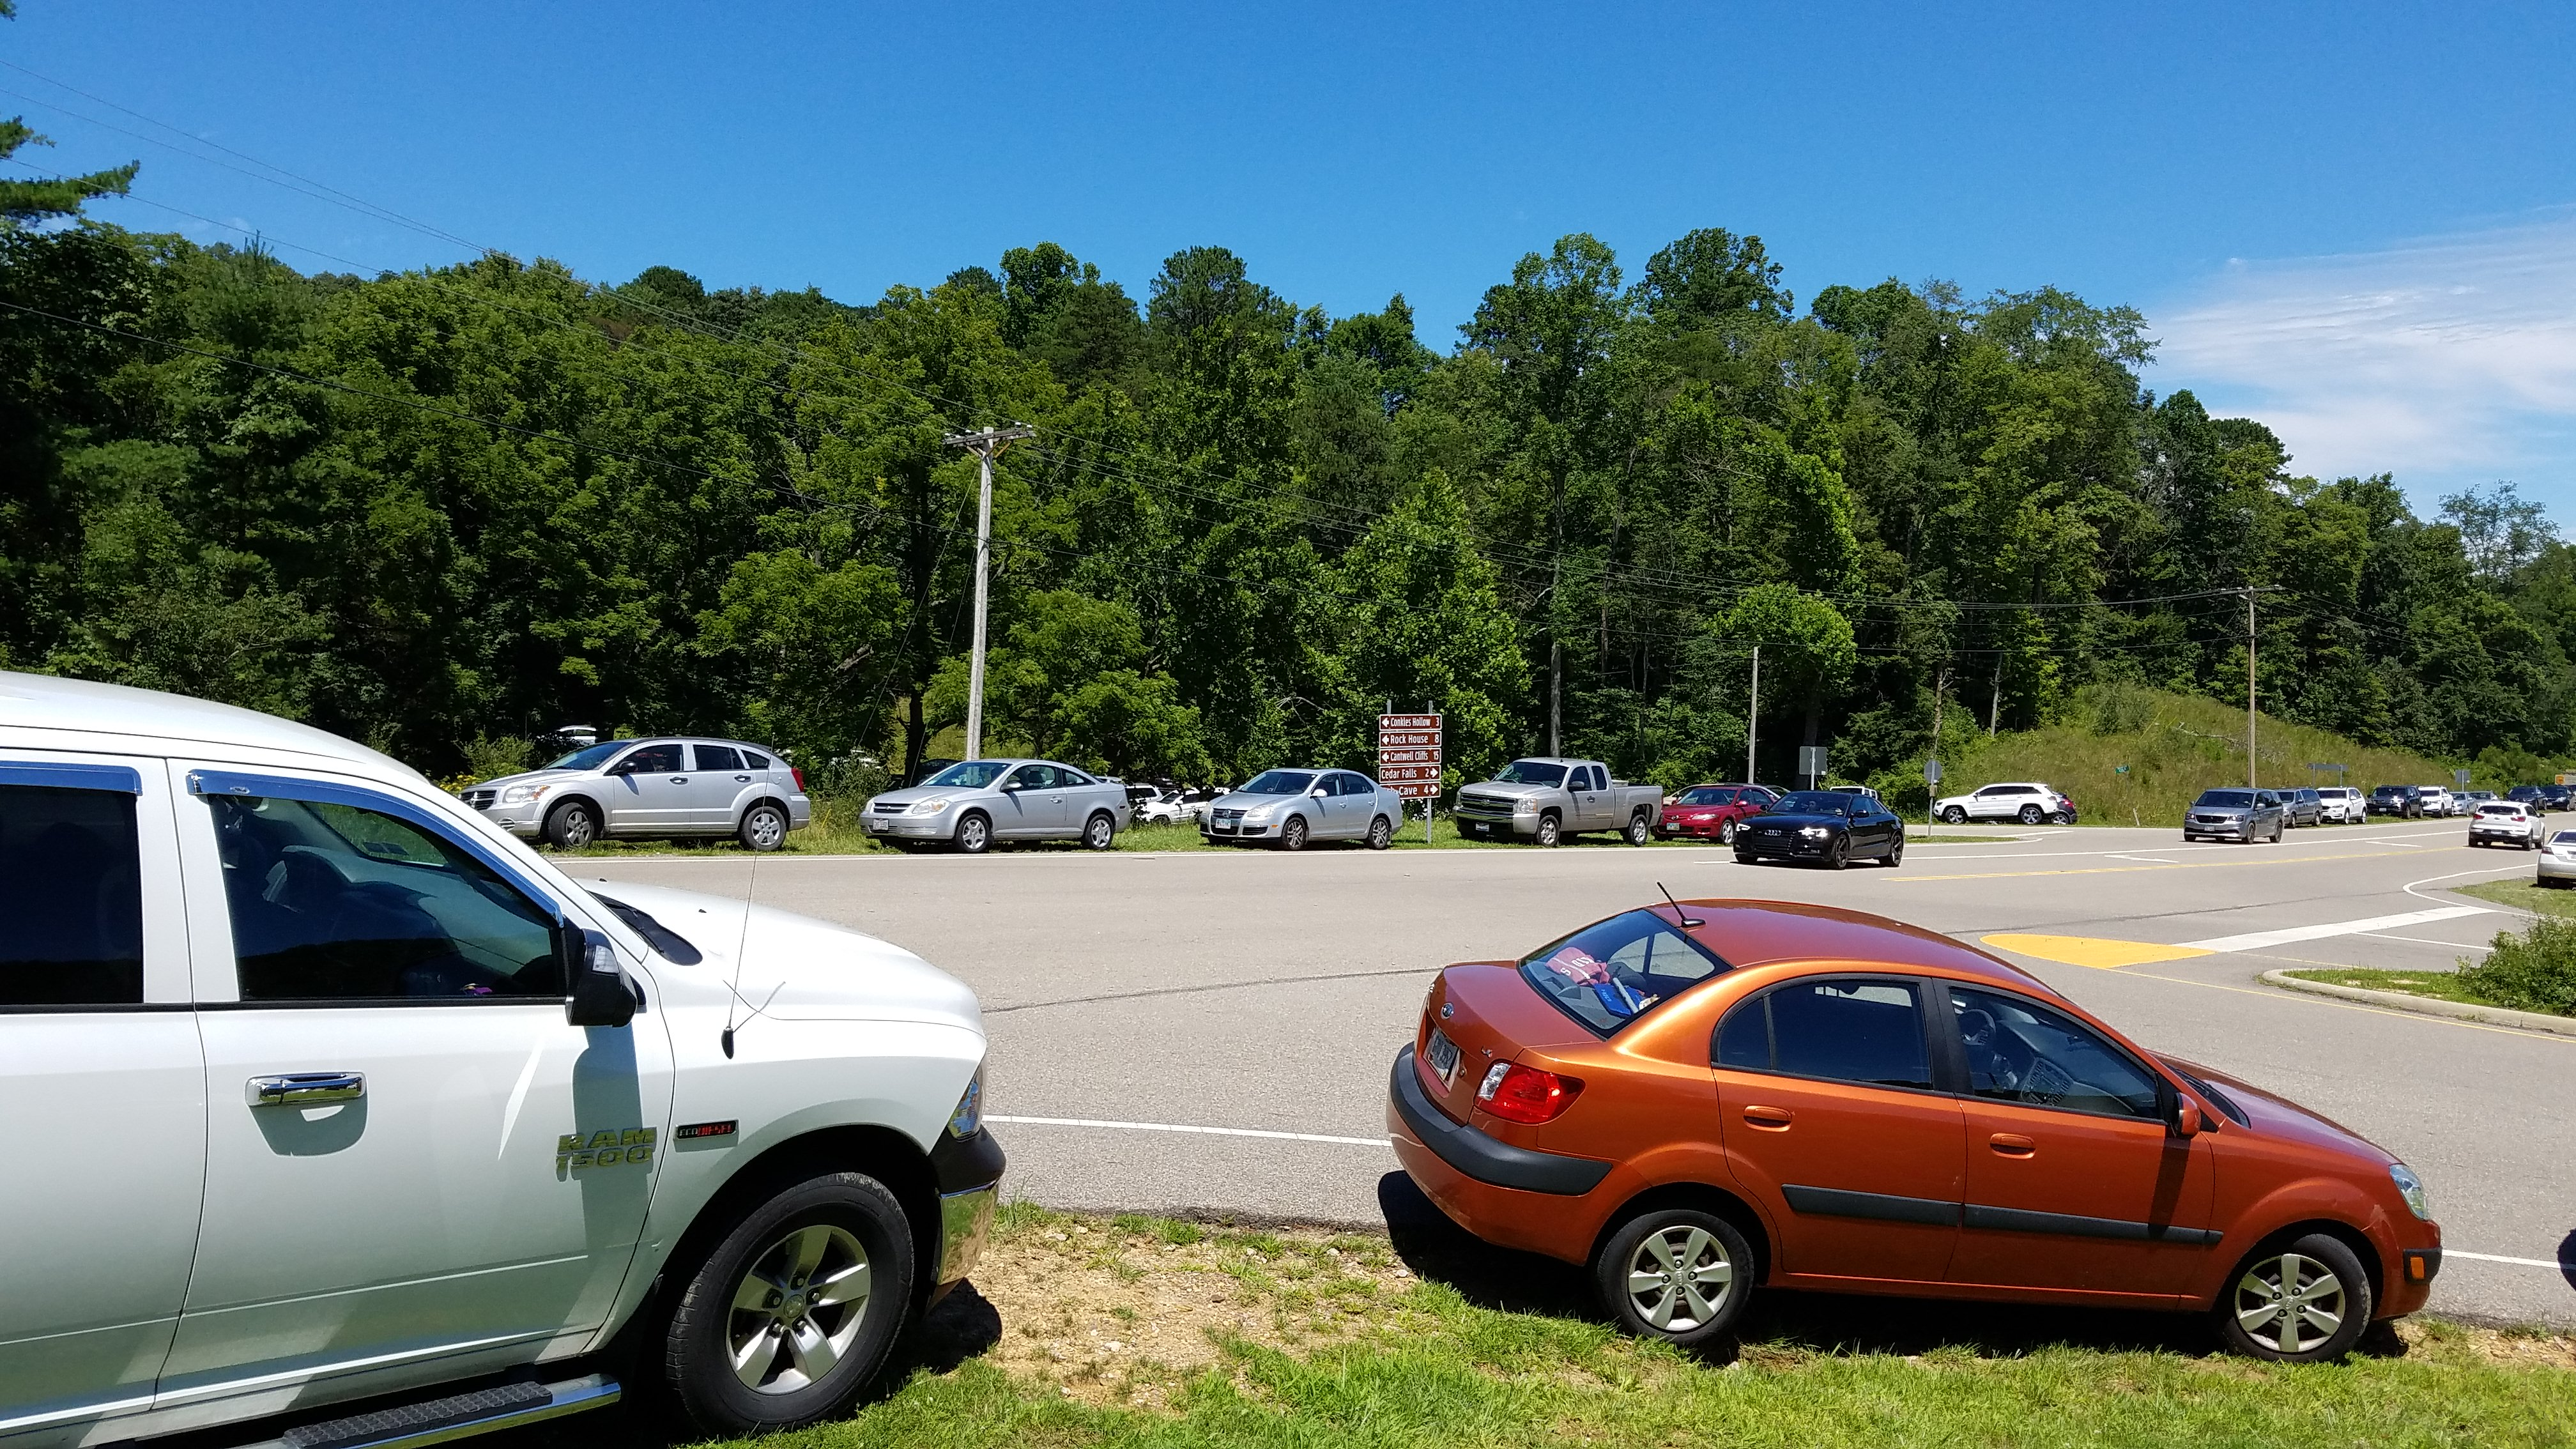 Parking situation at old man's cave photo